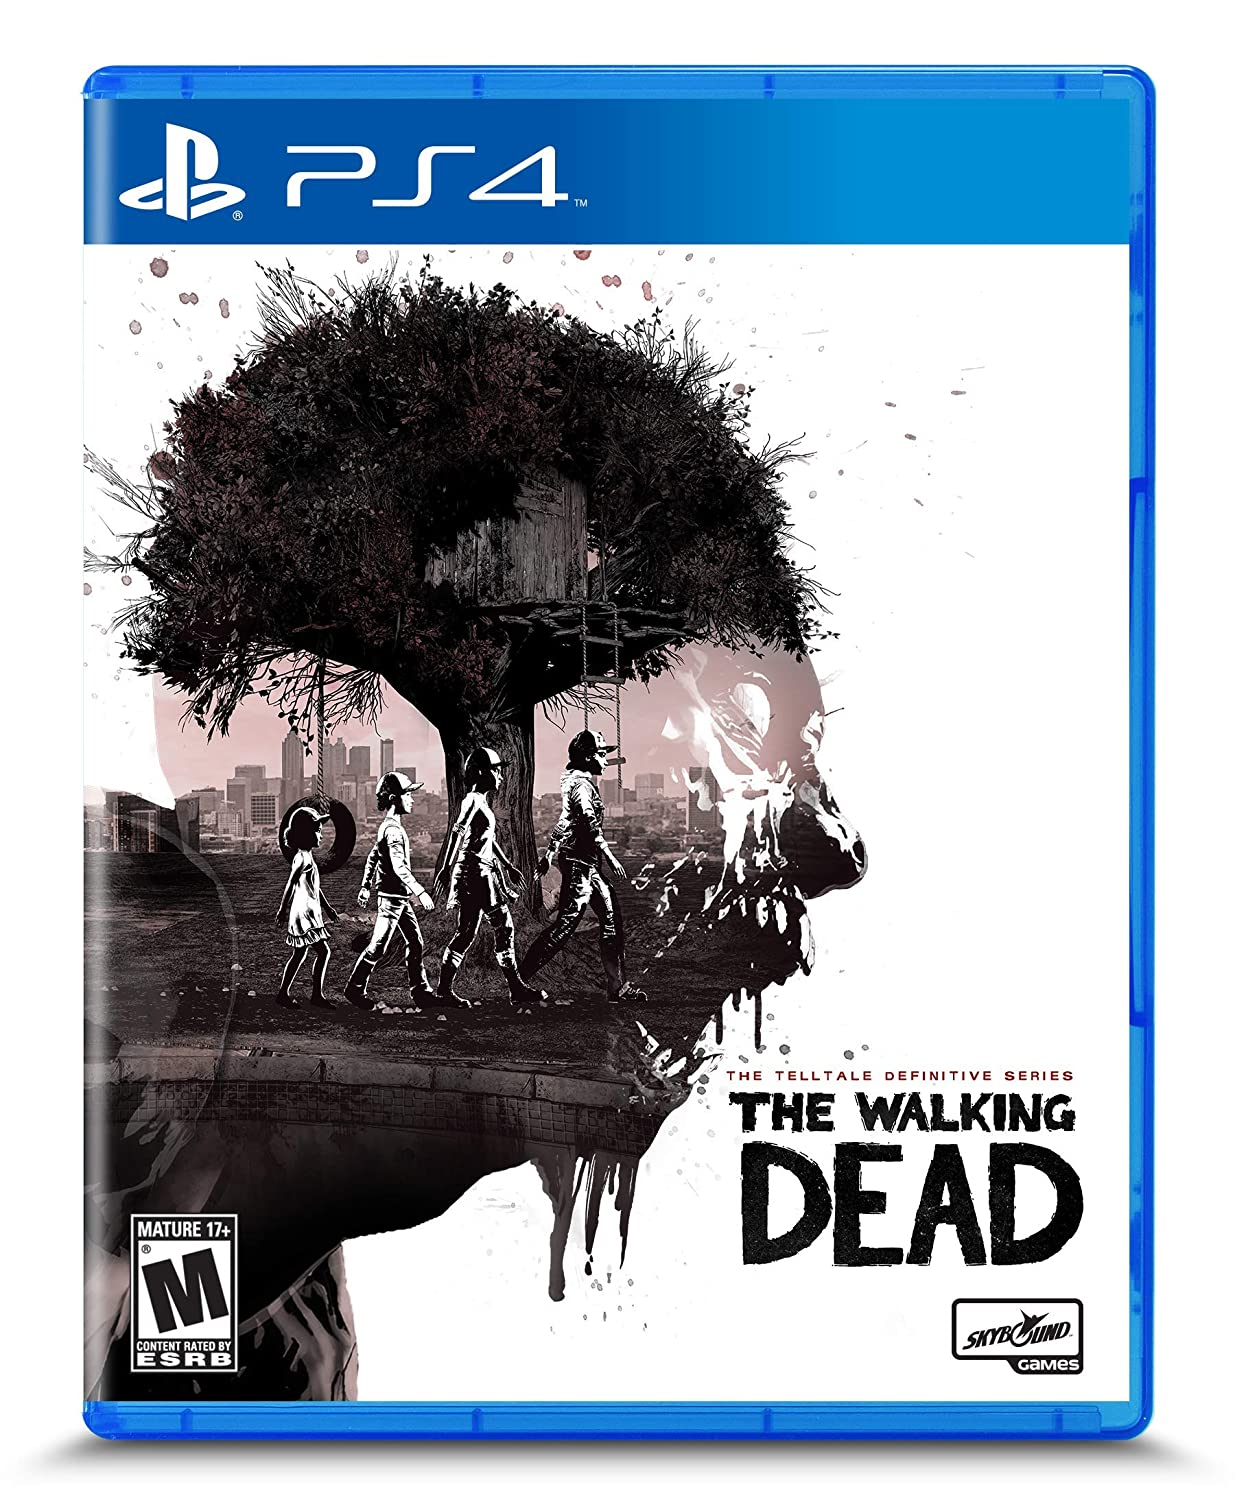 Amazon discounts Dreams, NBA 2K20, Walking Dead Definitive Series and more